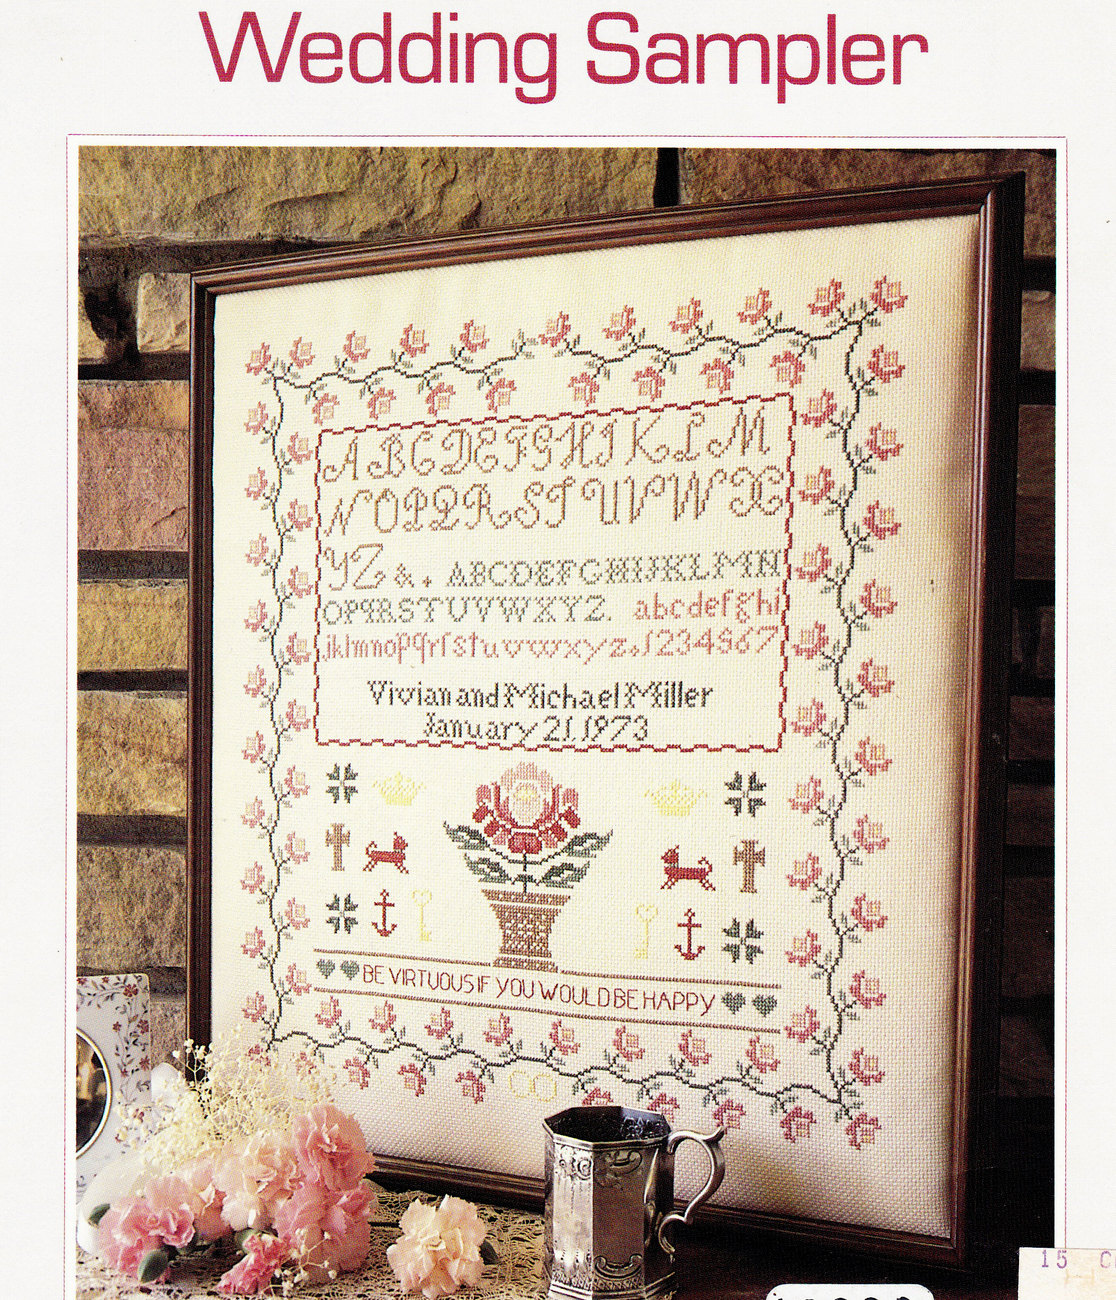 counted cross stitch wedding sampler samplers